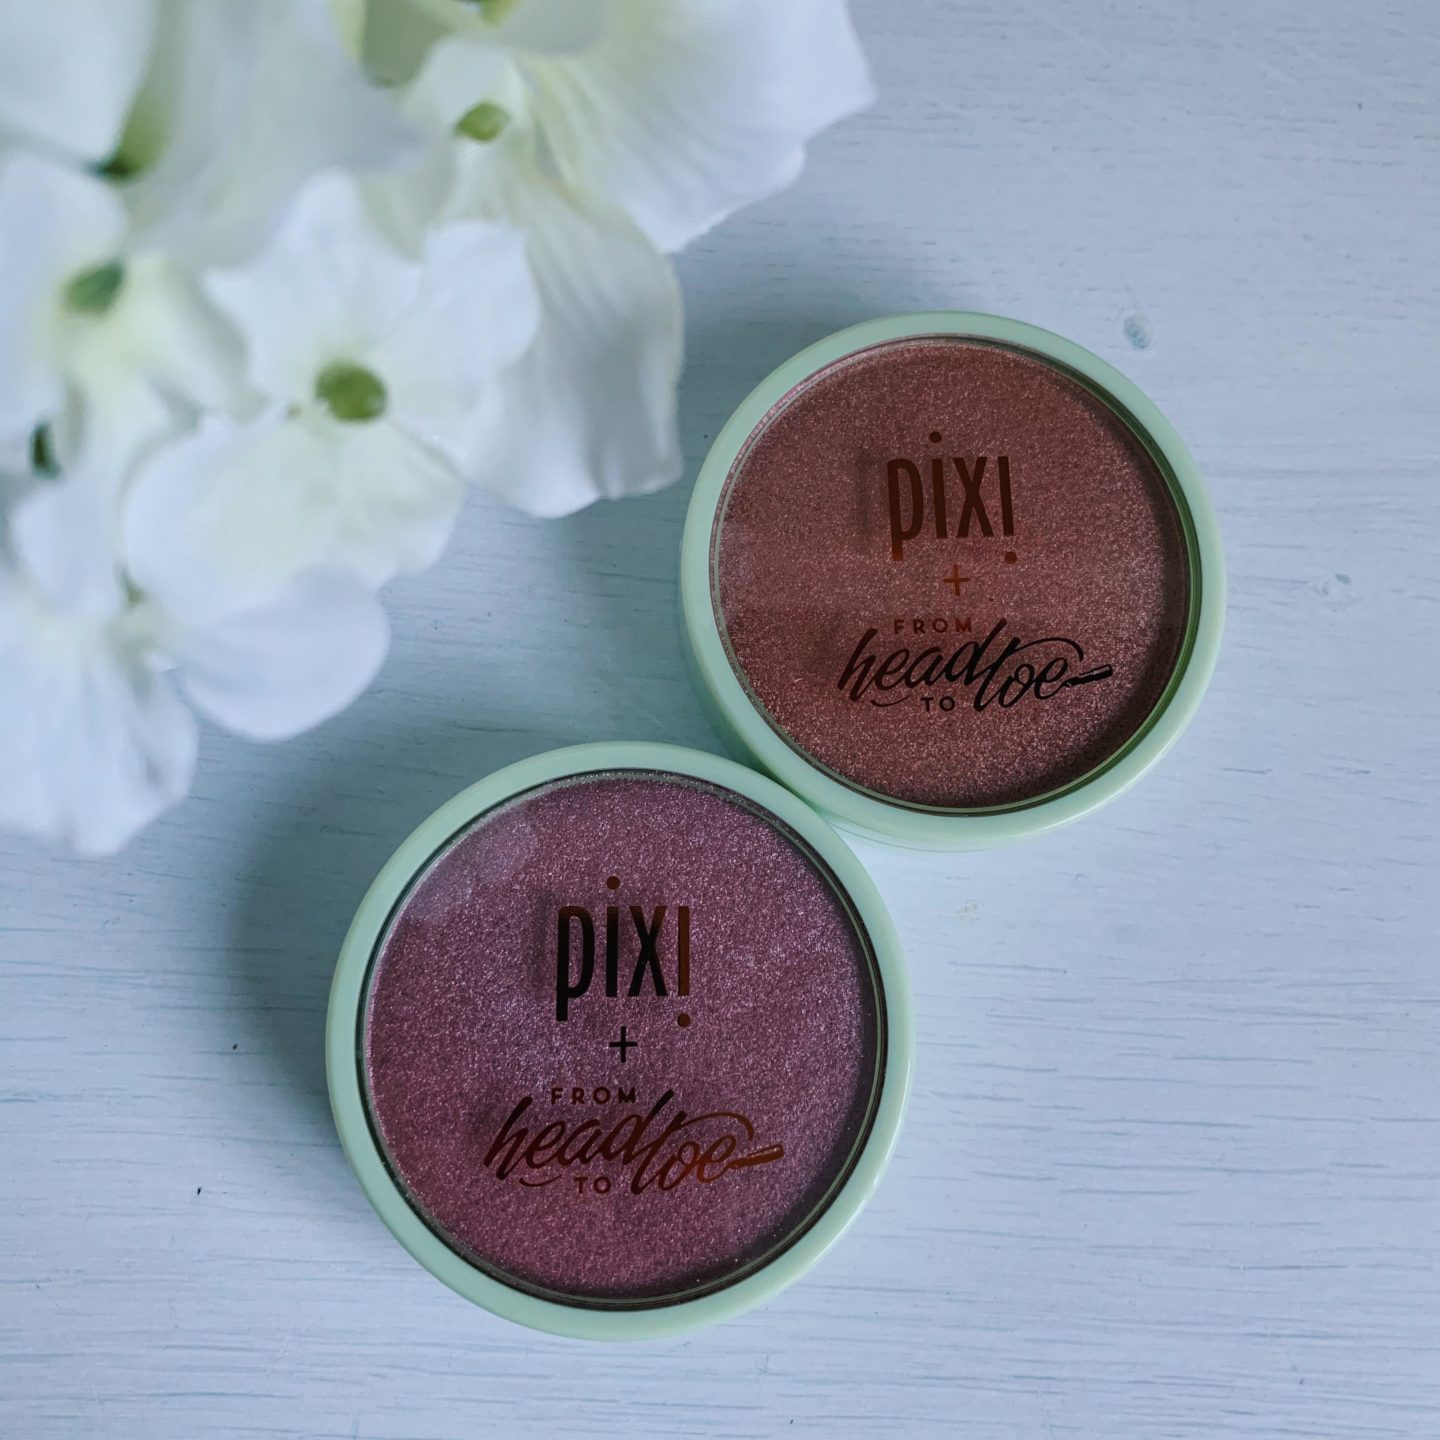 From Head To Toe Glow Highlighters - Pixi Pretties - Miss Boux